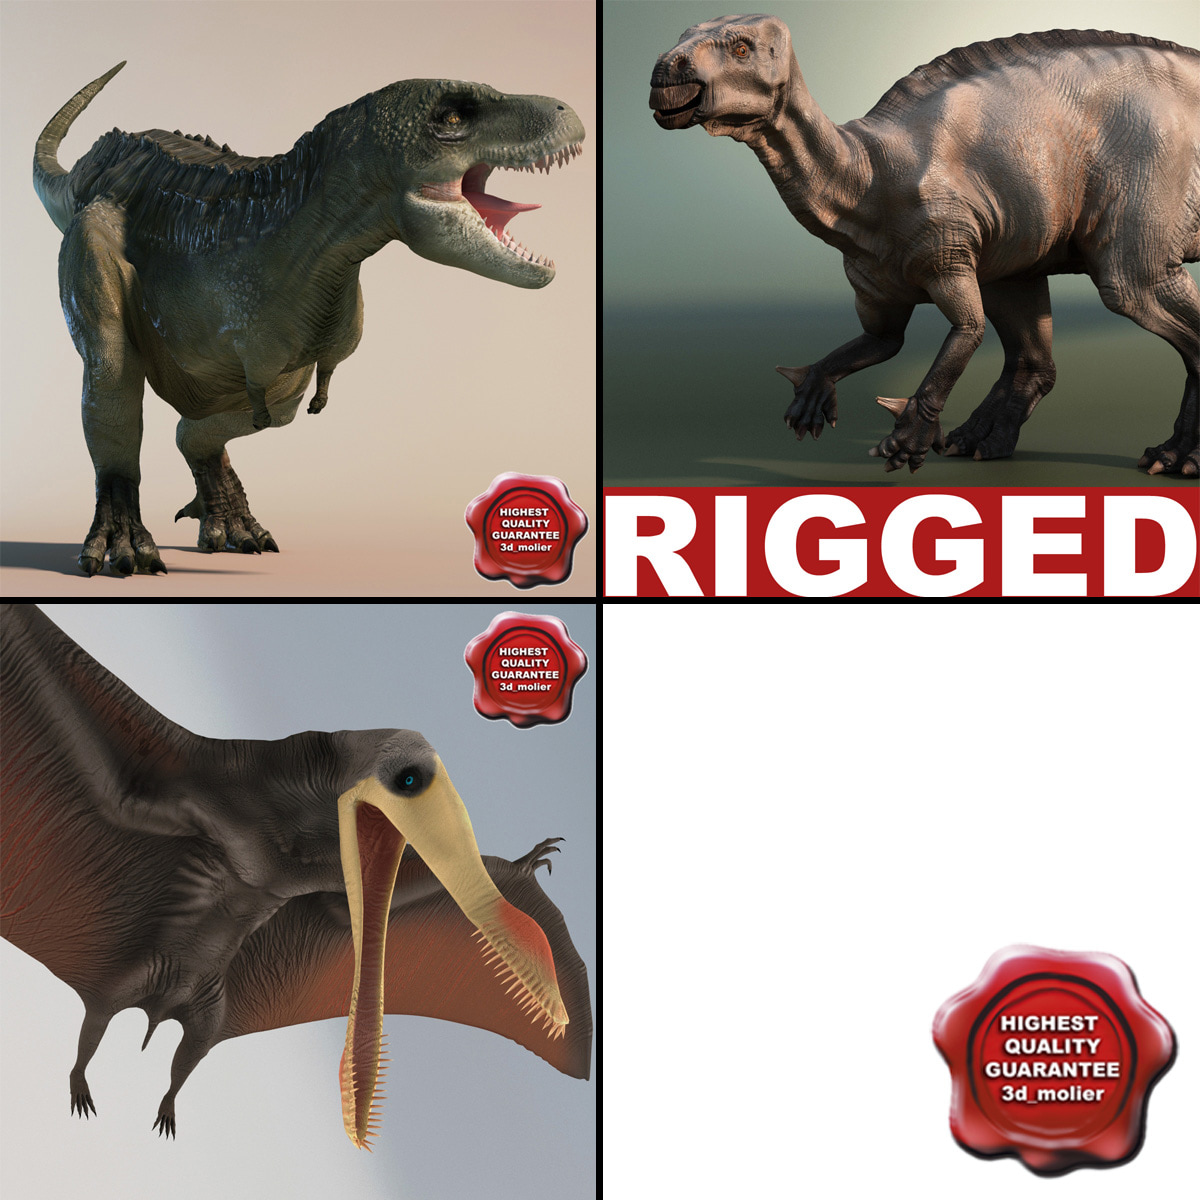 Dinosaurs_Rigged_Collection_000.jpg